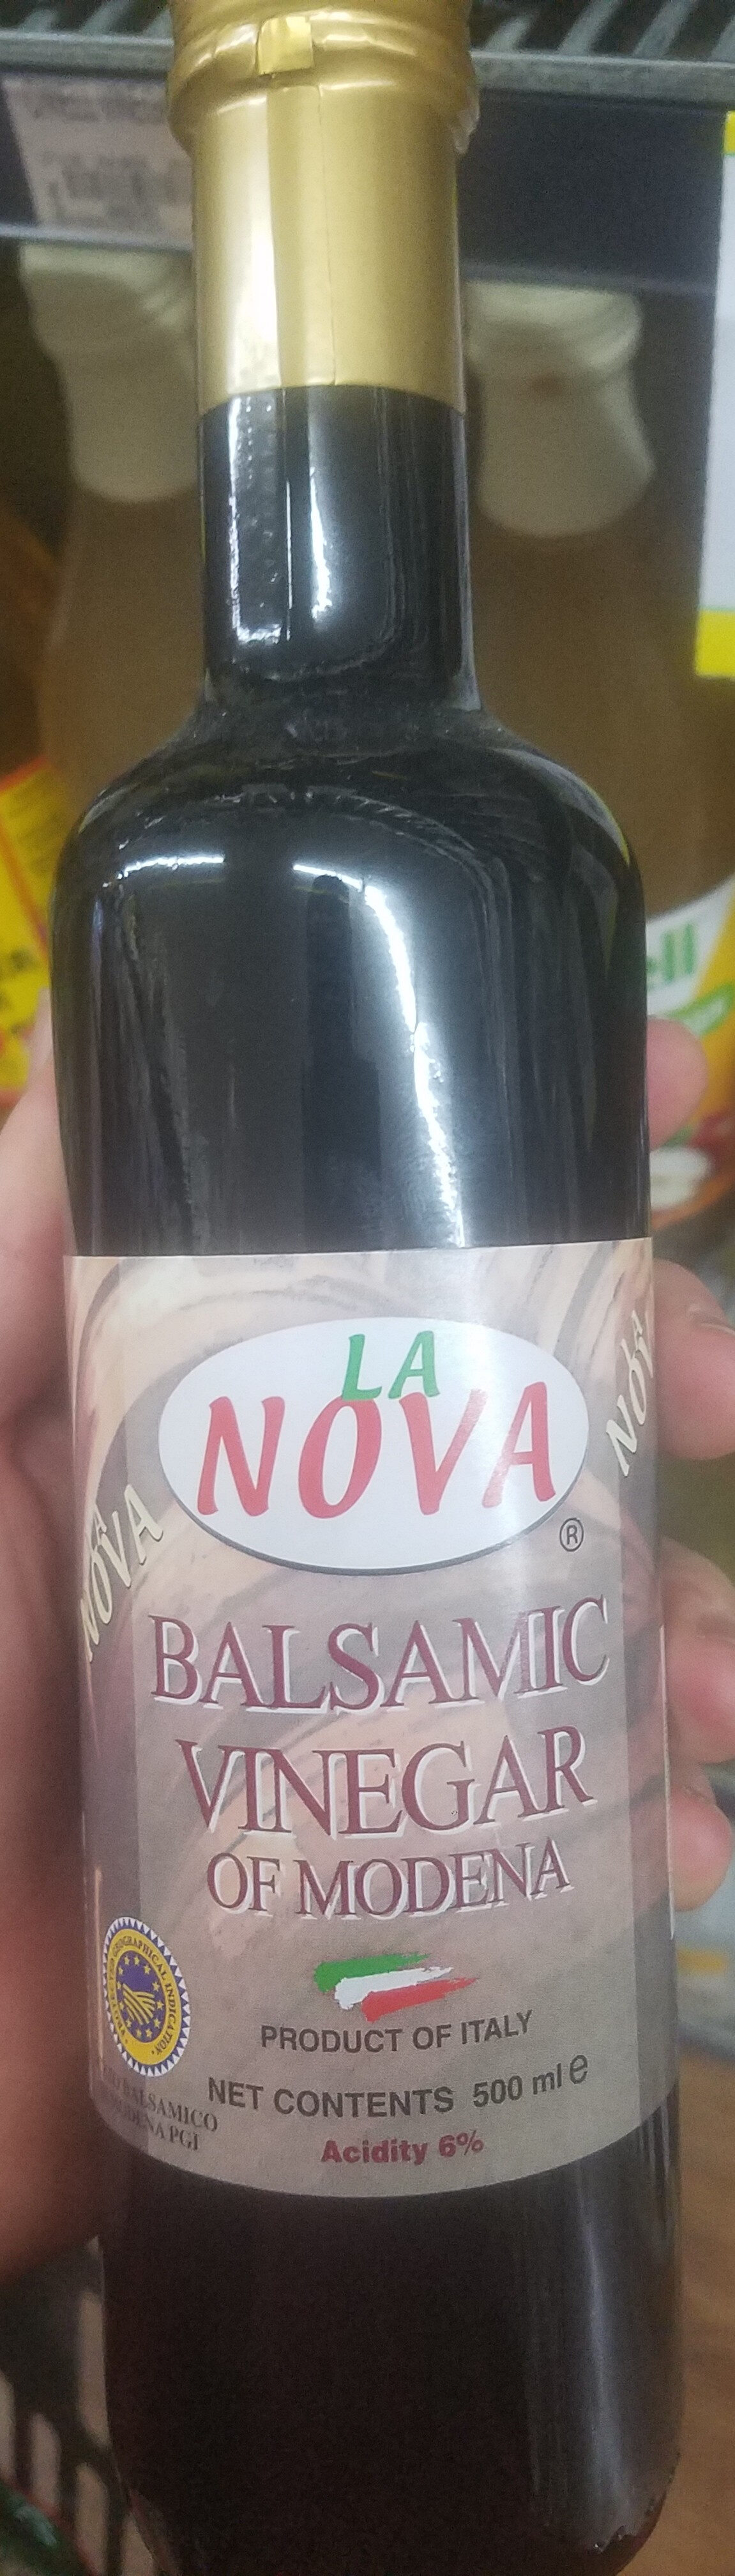 Balsamic Vinegar of Modena - Product - en